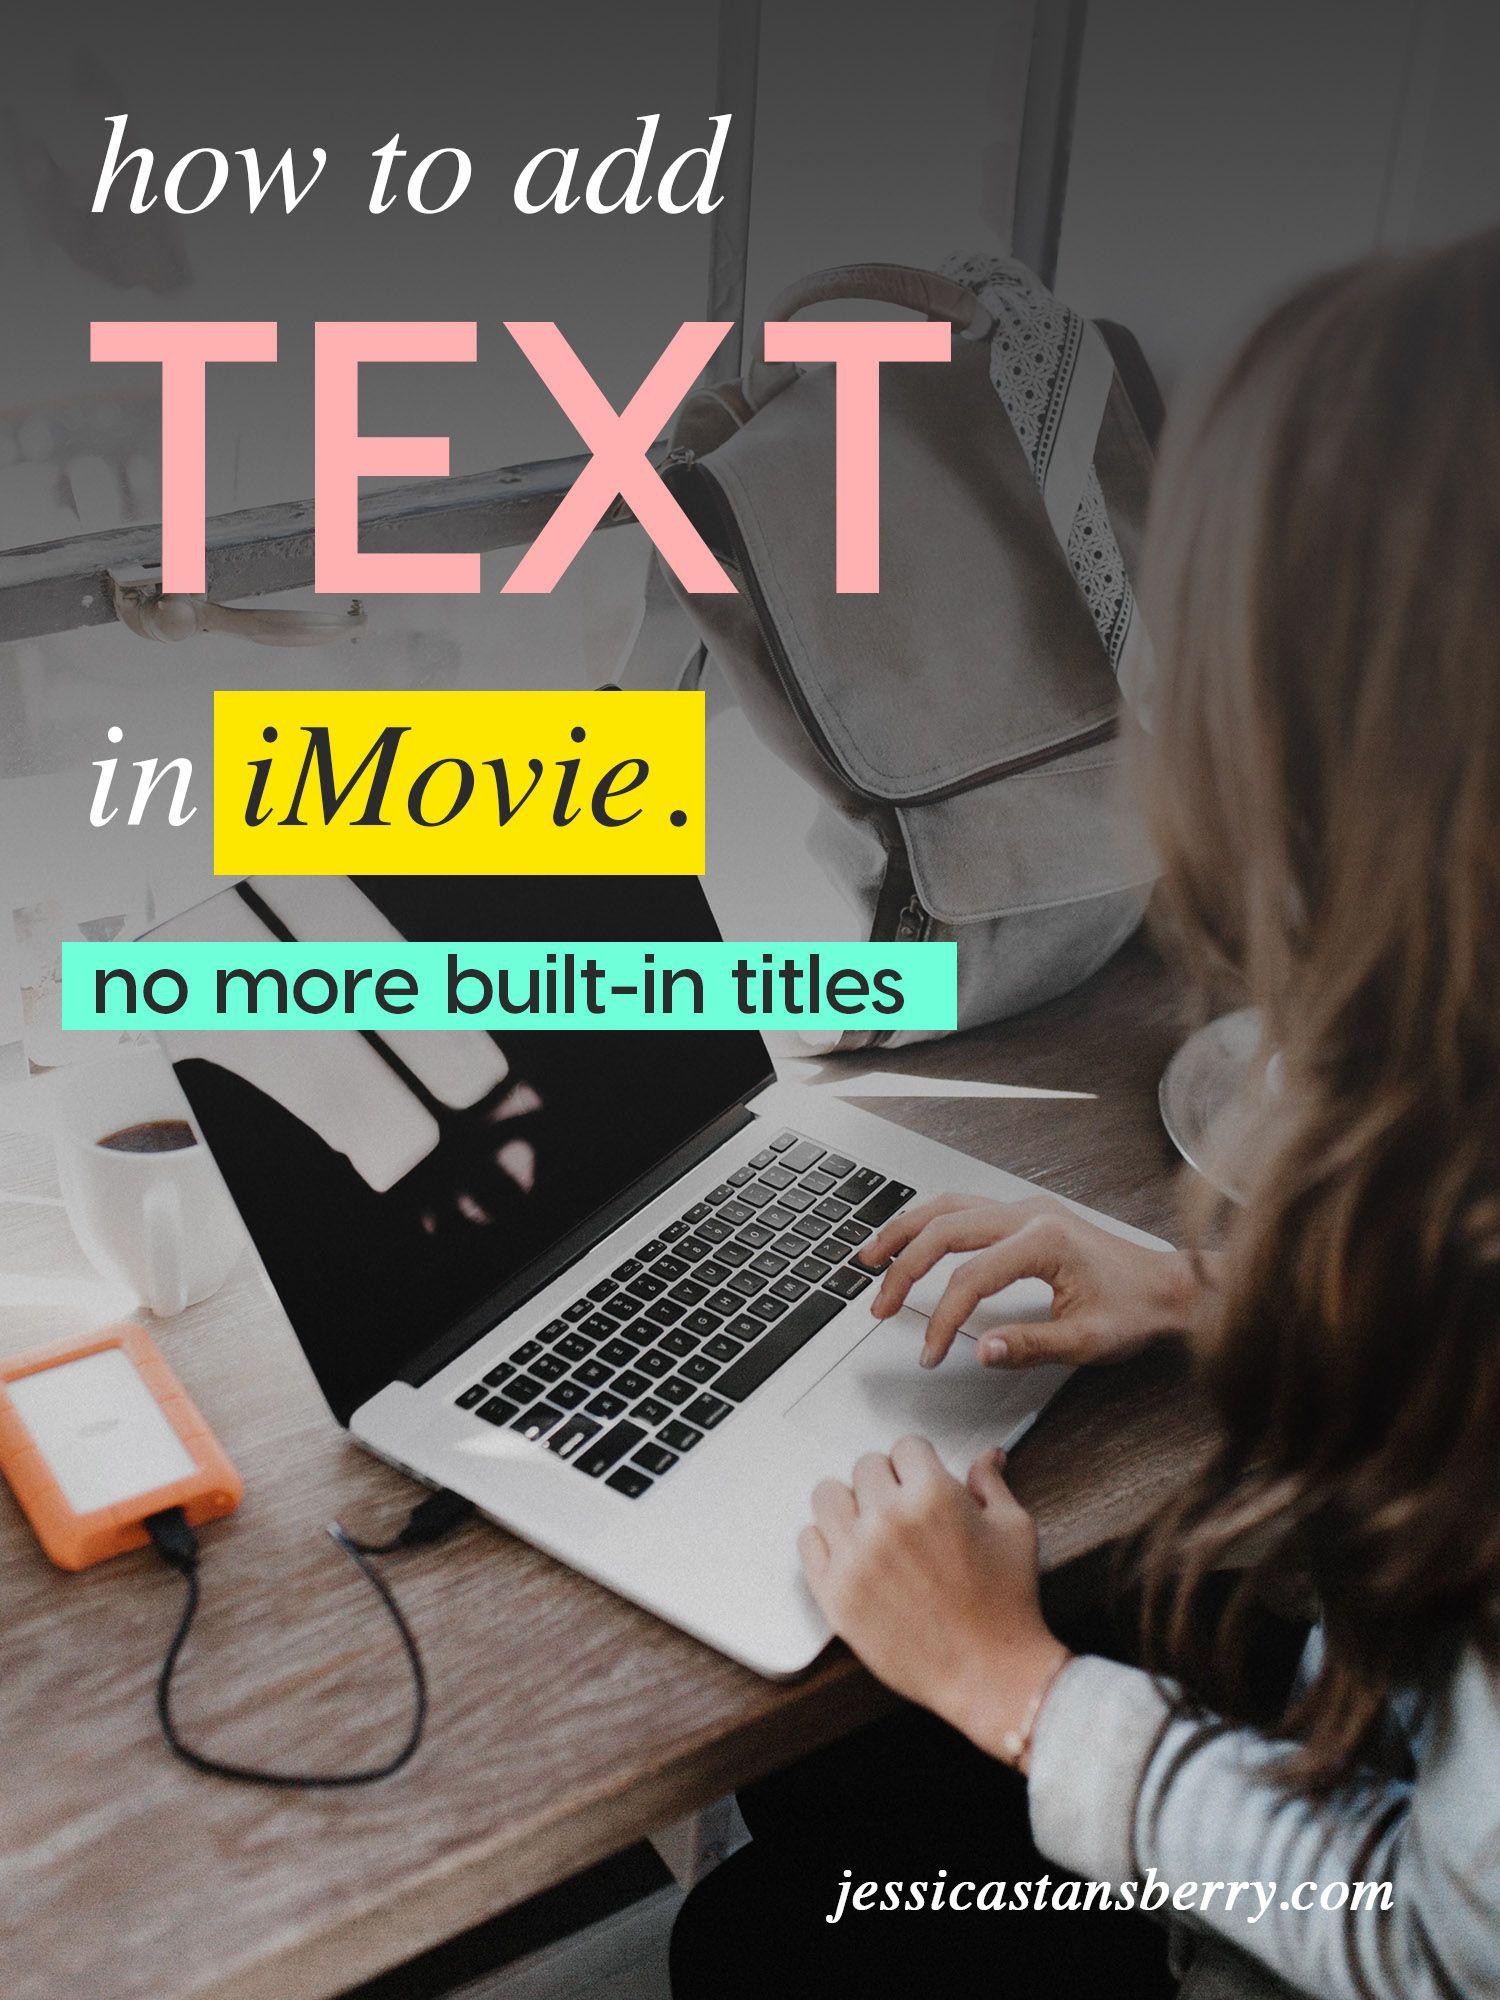 How To Add Text To Imovie A Video Tutorial For Adding Text To Imovie Youtube Channel Ideas Start Youtube Channel Iphone Videography